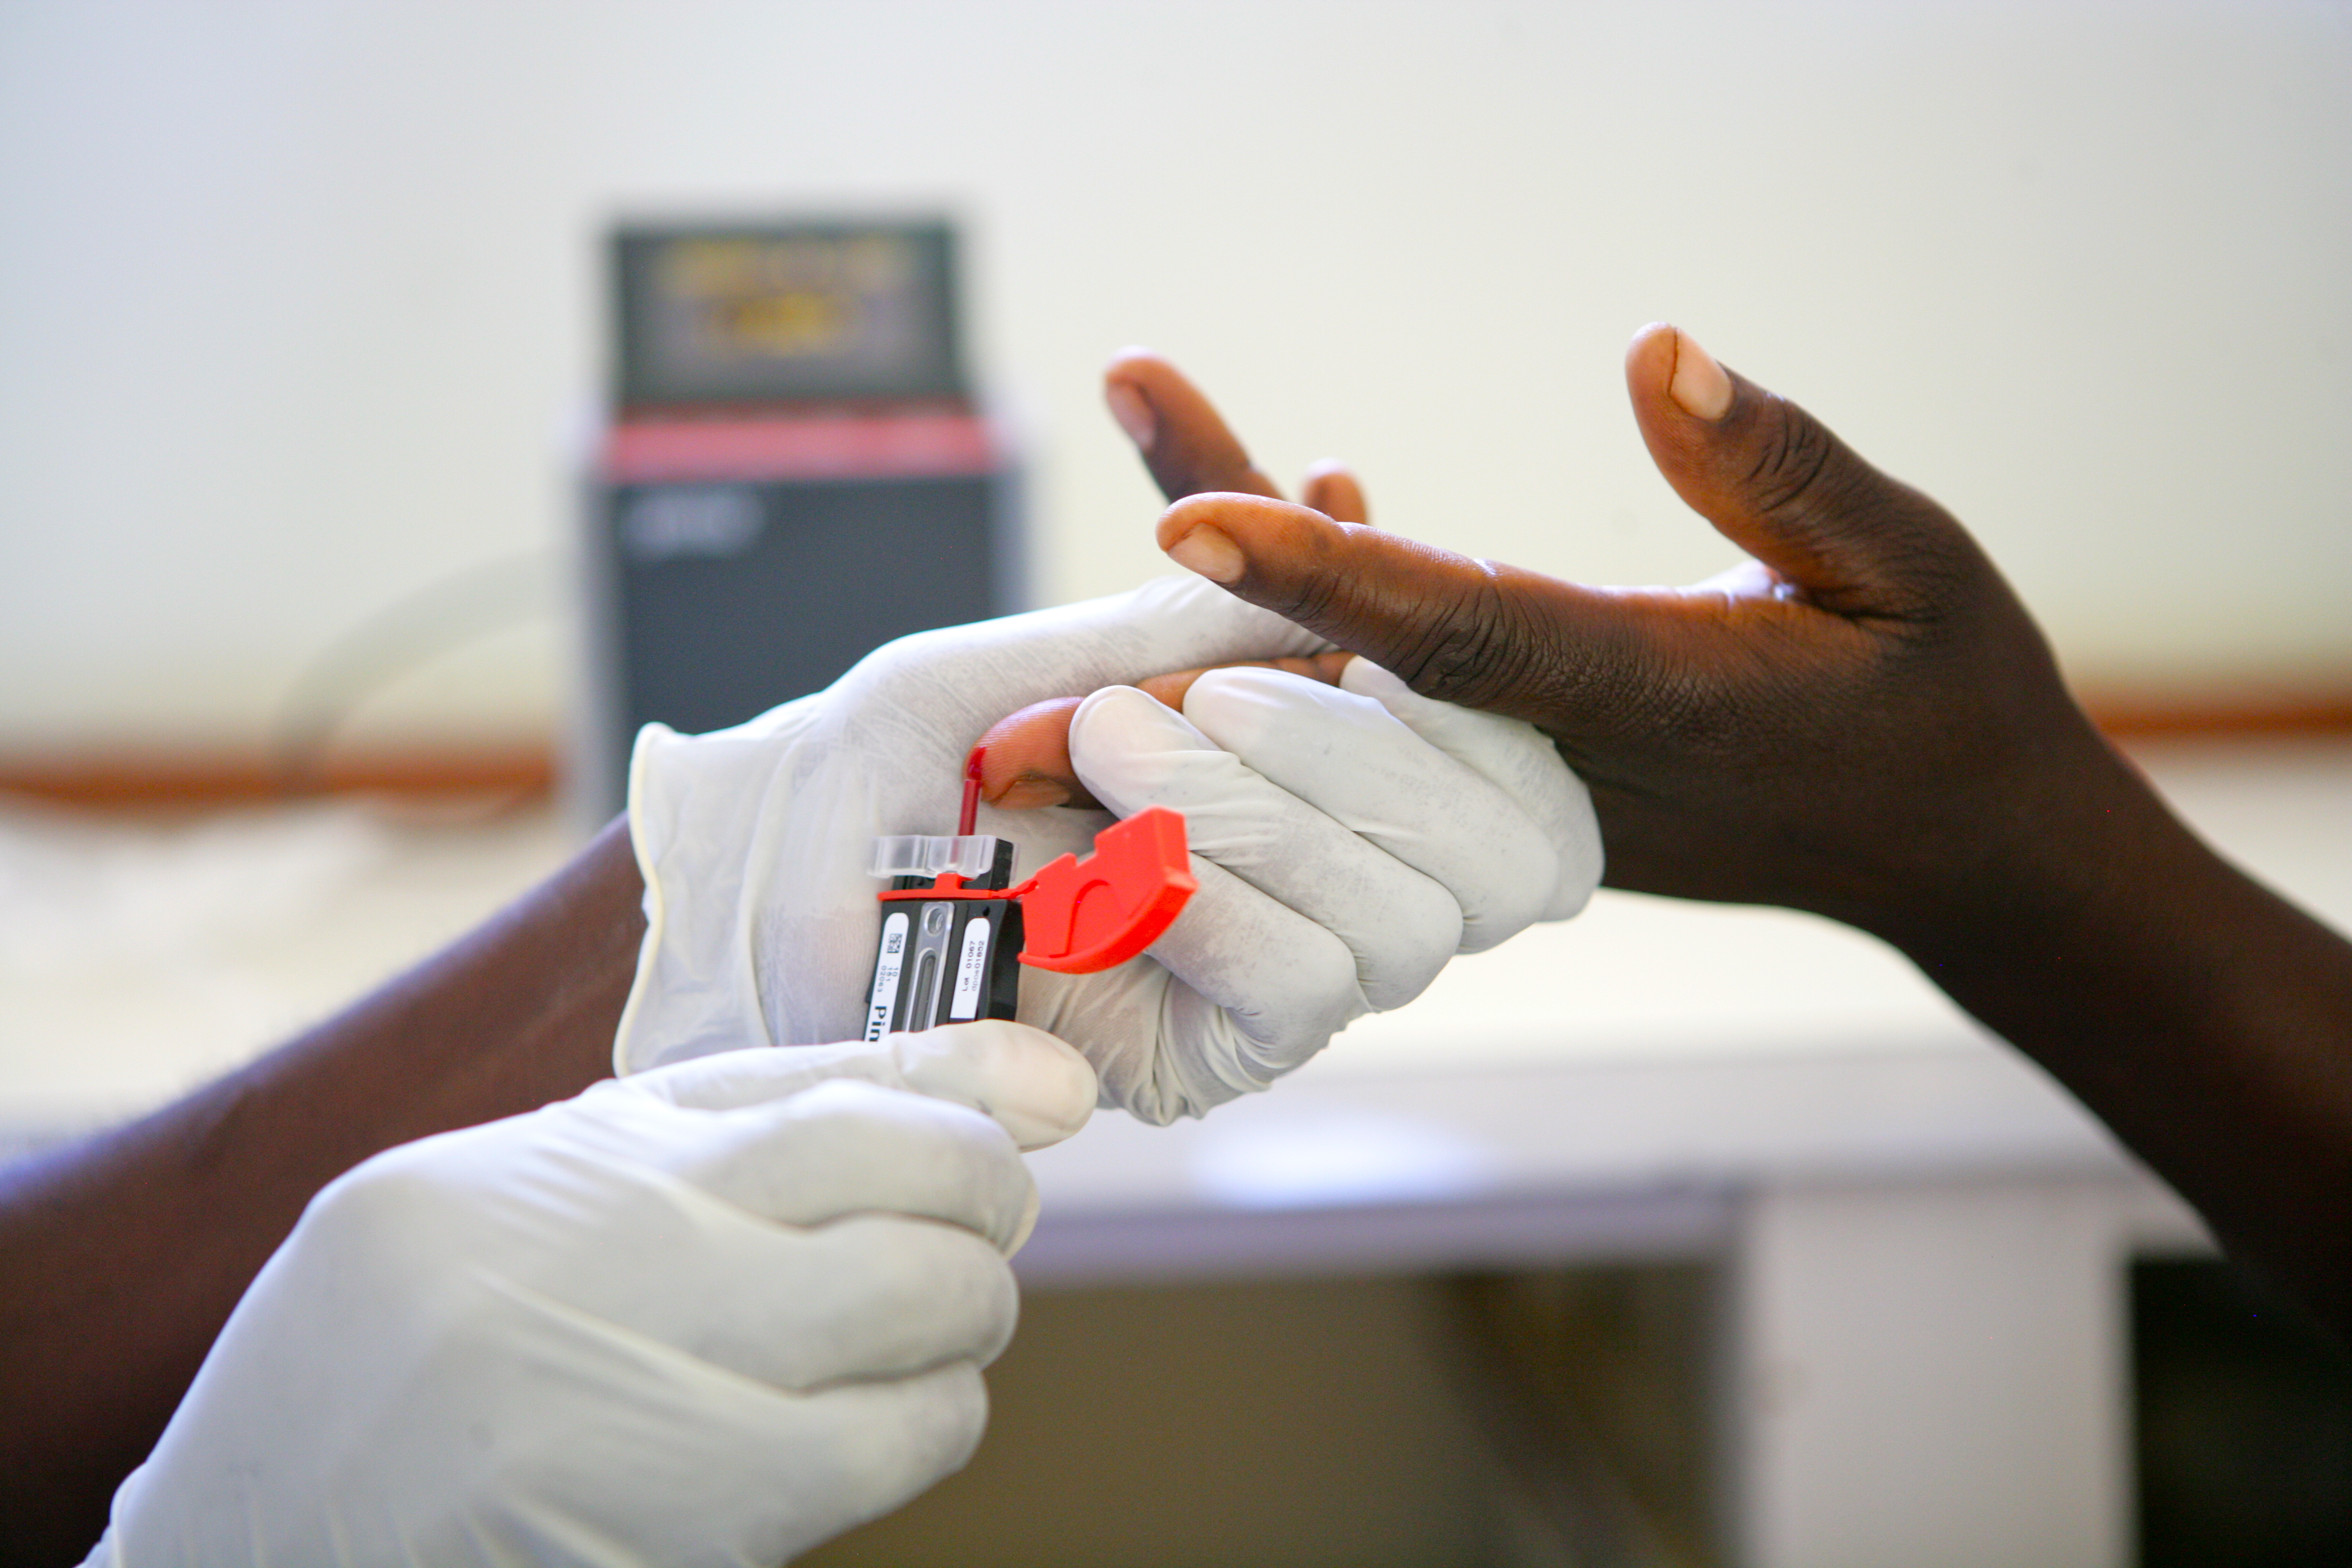 Image of collecting blood for HIV rapid test in Zimbabwe (©UNICEF/UNI106377/Pirozzi)